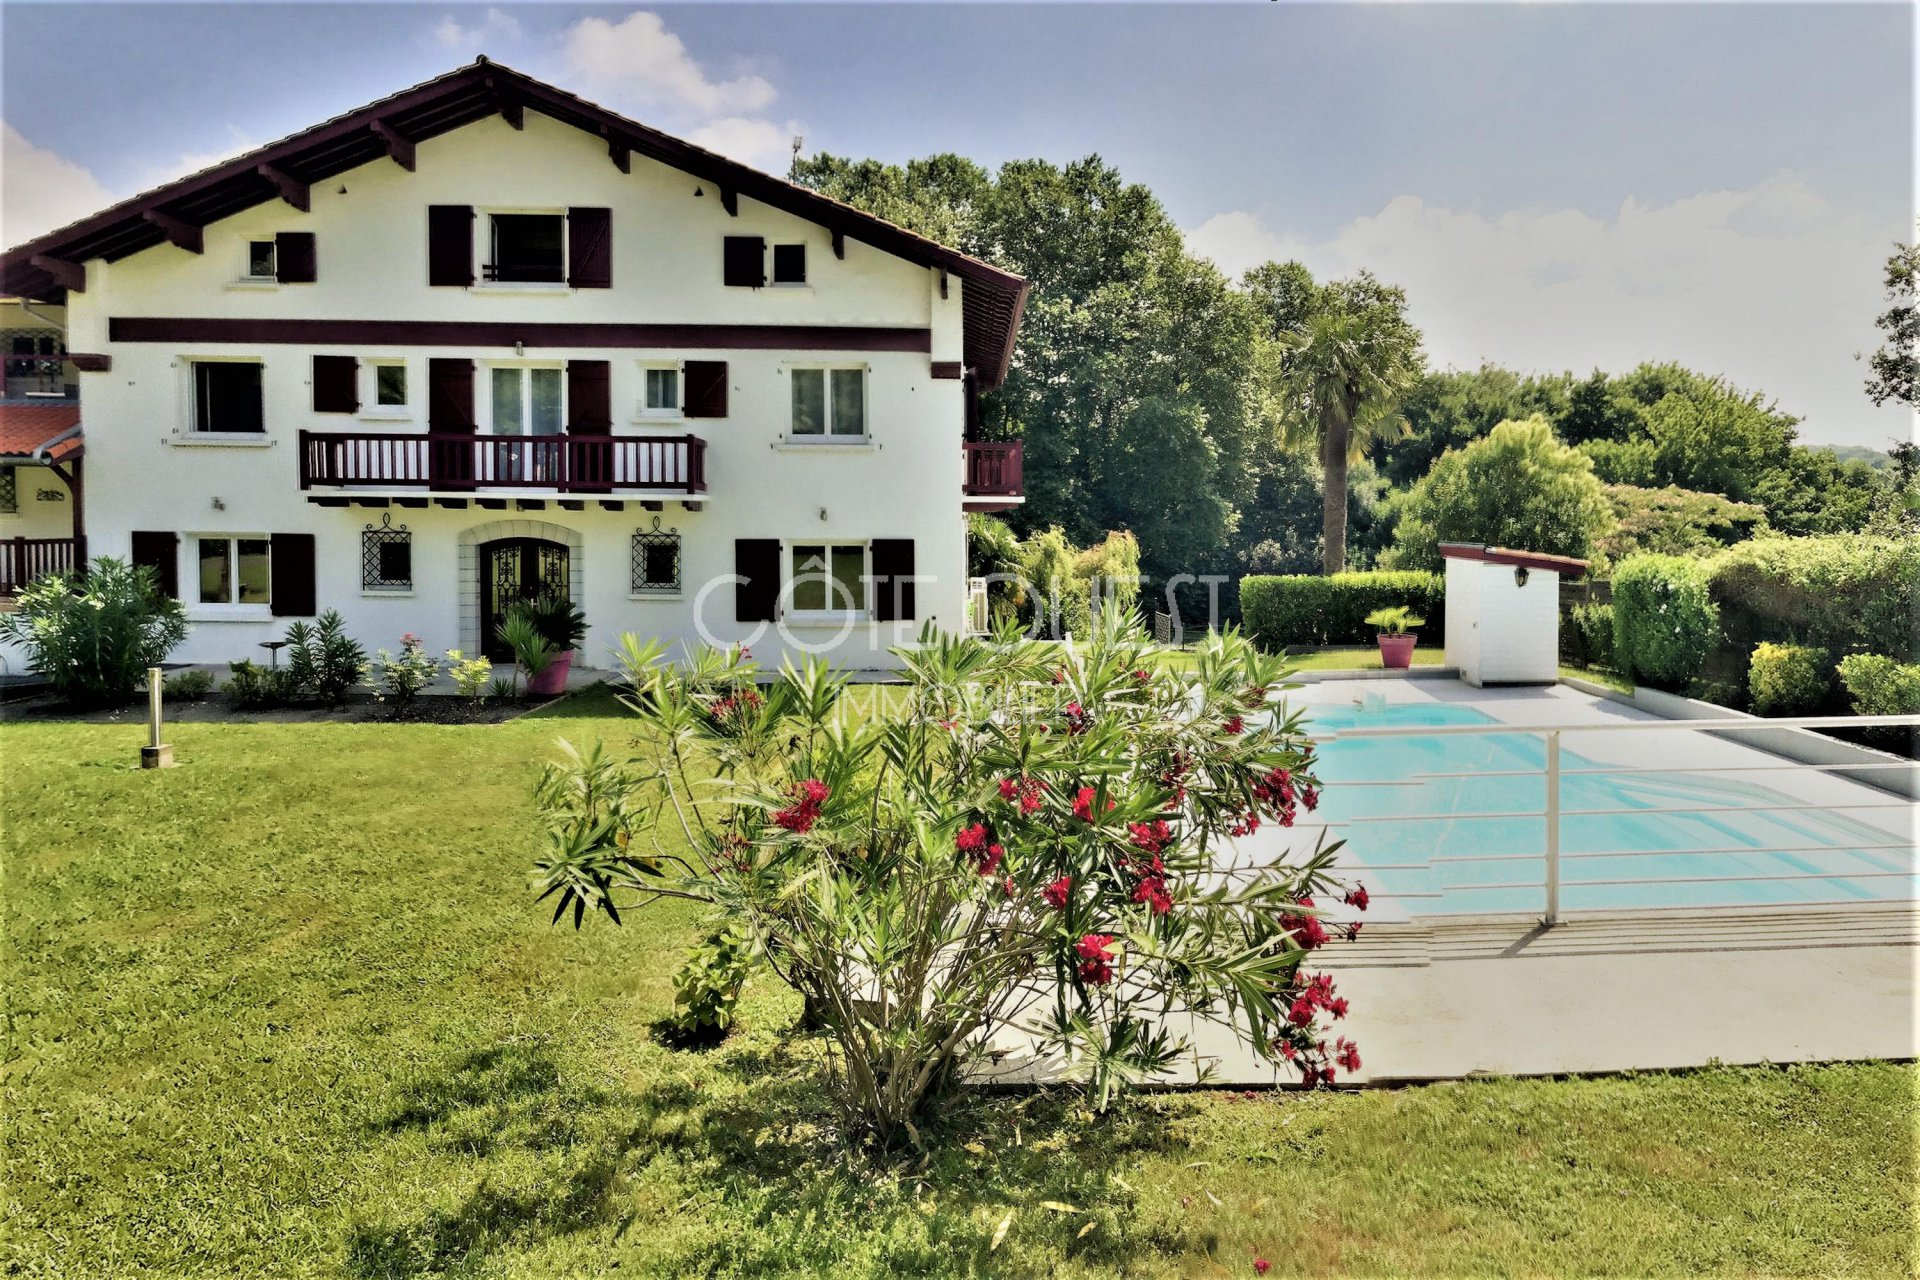 USTARITZ. A BEAUTIFUL 11-ROOM PROPERTY WITH A SWIMMING POOL